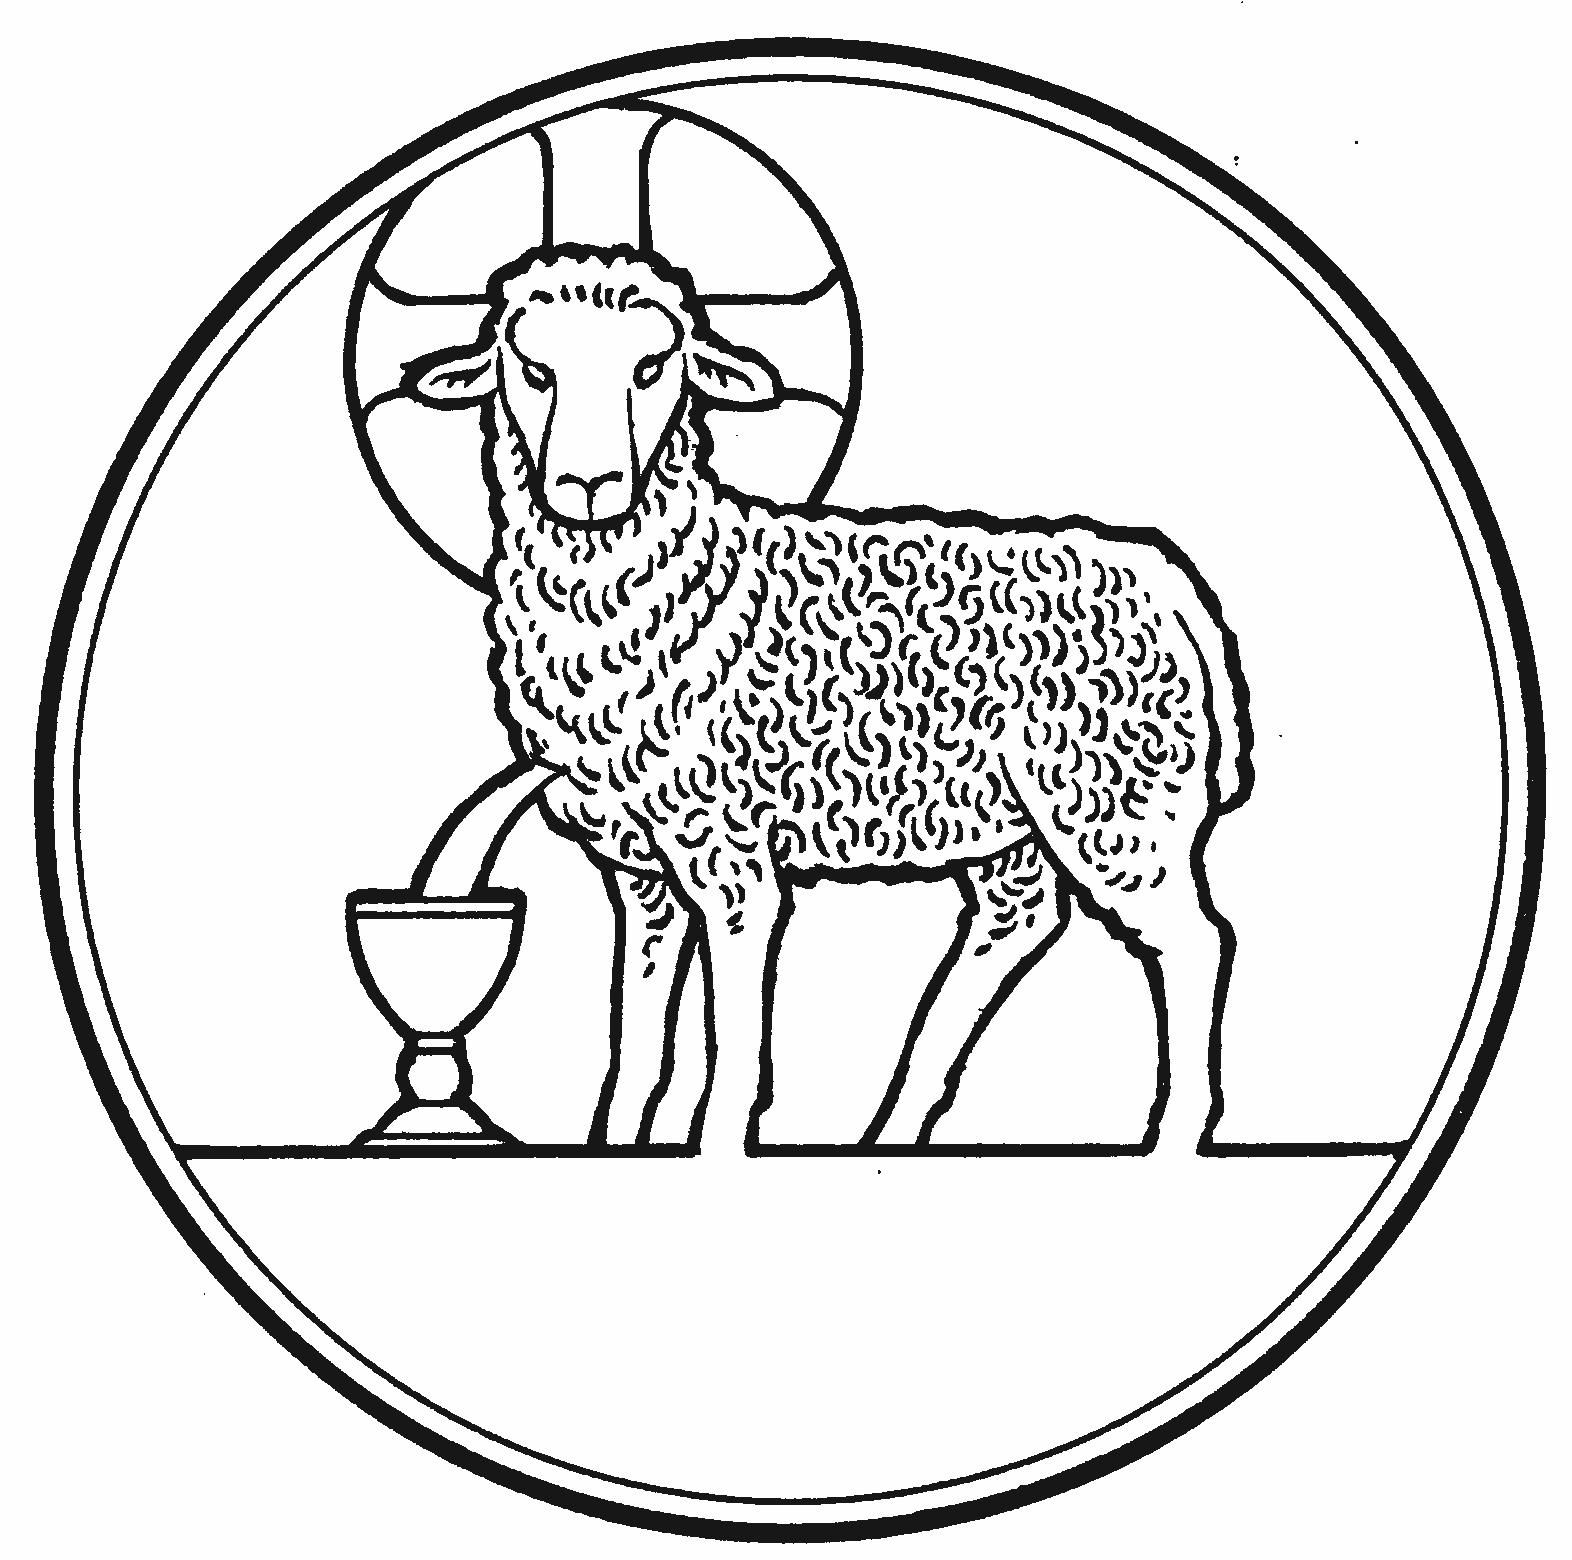 Lamb of God Clip Art Black and White Take a look at the ...